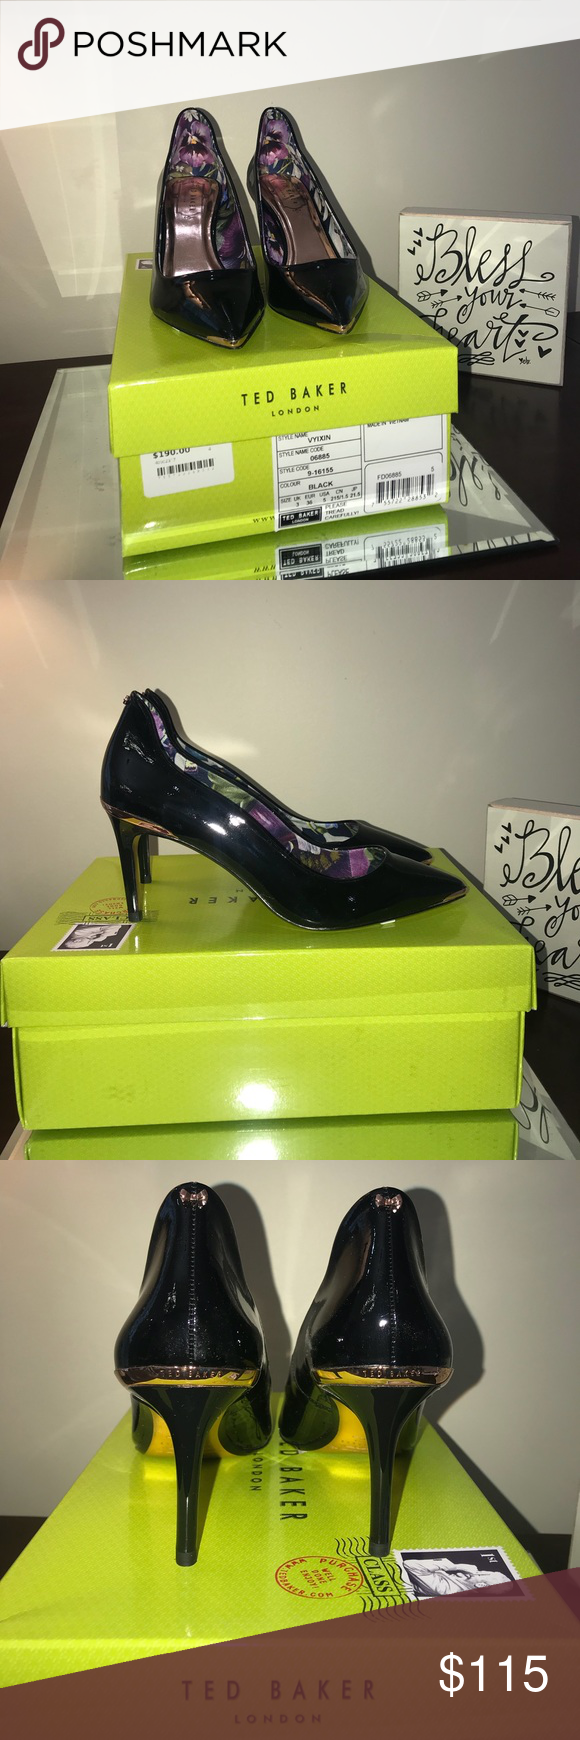 89a2fb3f3ca08e Ted Baker Vyixin Black Pumps Size 5 36 New in Box Ted Baker Vyixin Black  Size US 5   EUR 36 New in box Extra heel pieces in box   please note box  and shoes ...